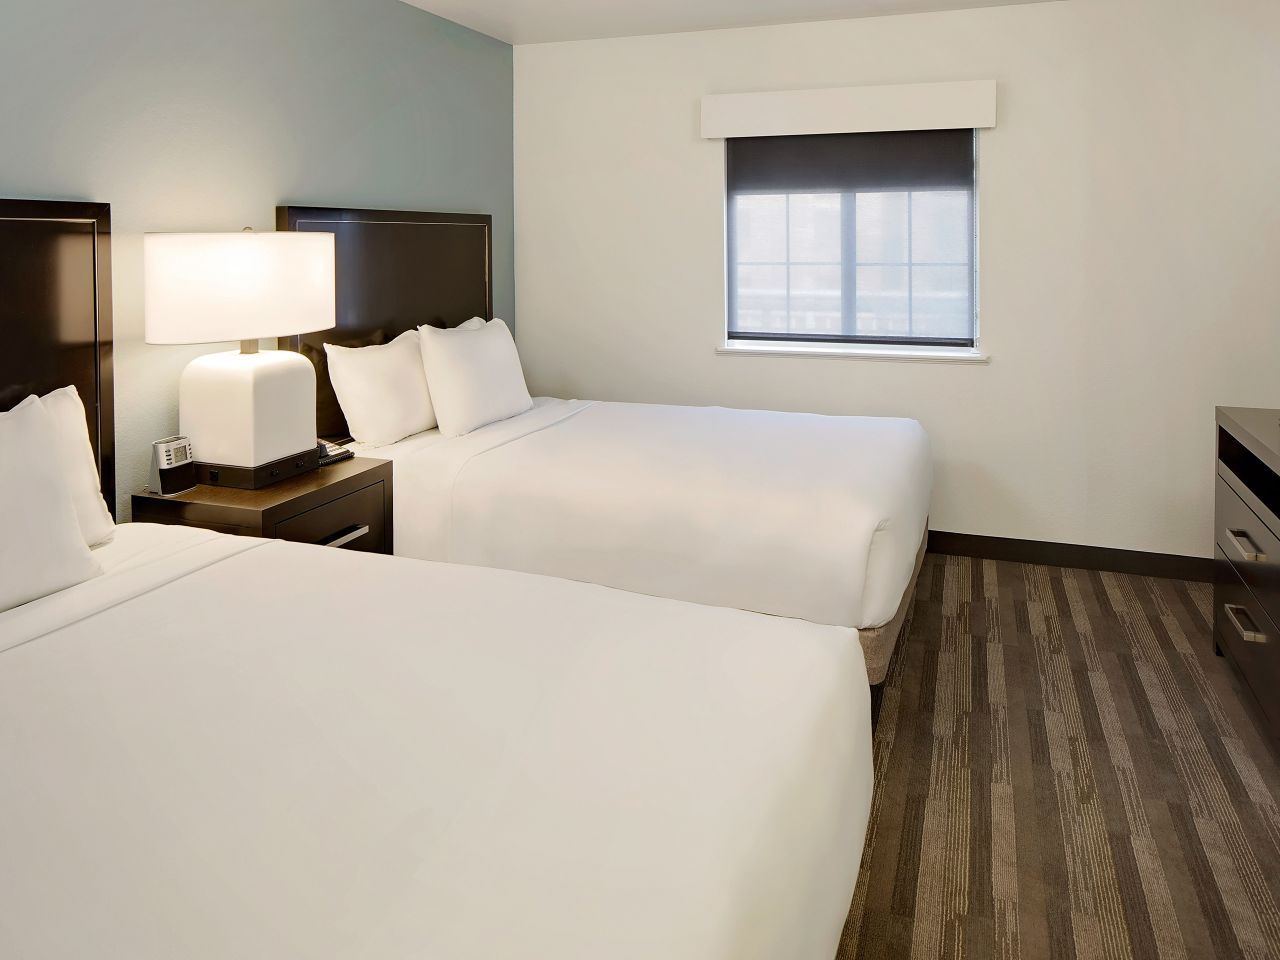 Hyatt House Dallas / Addison two queen guestroom